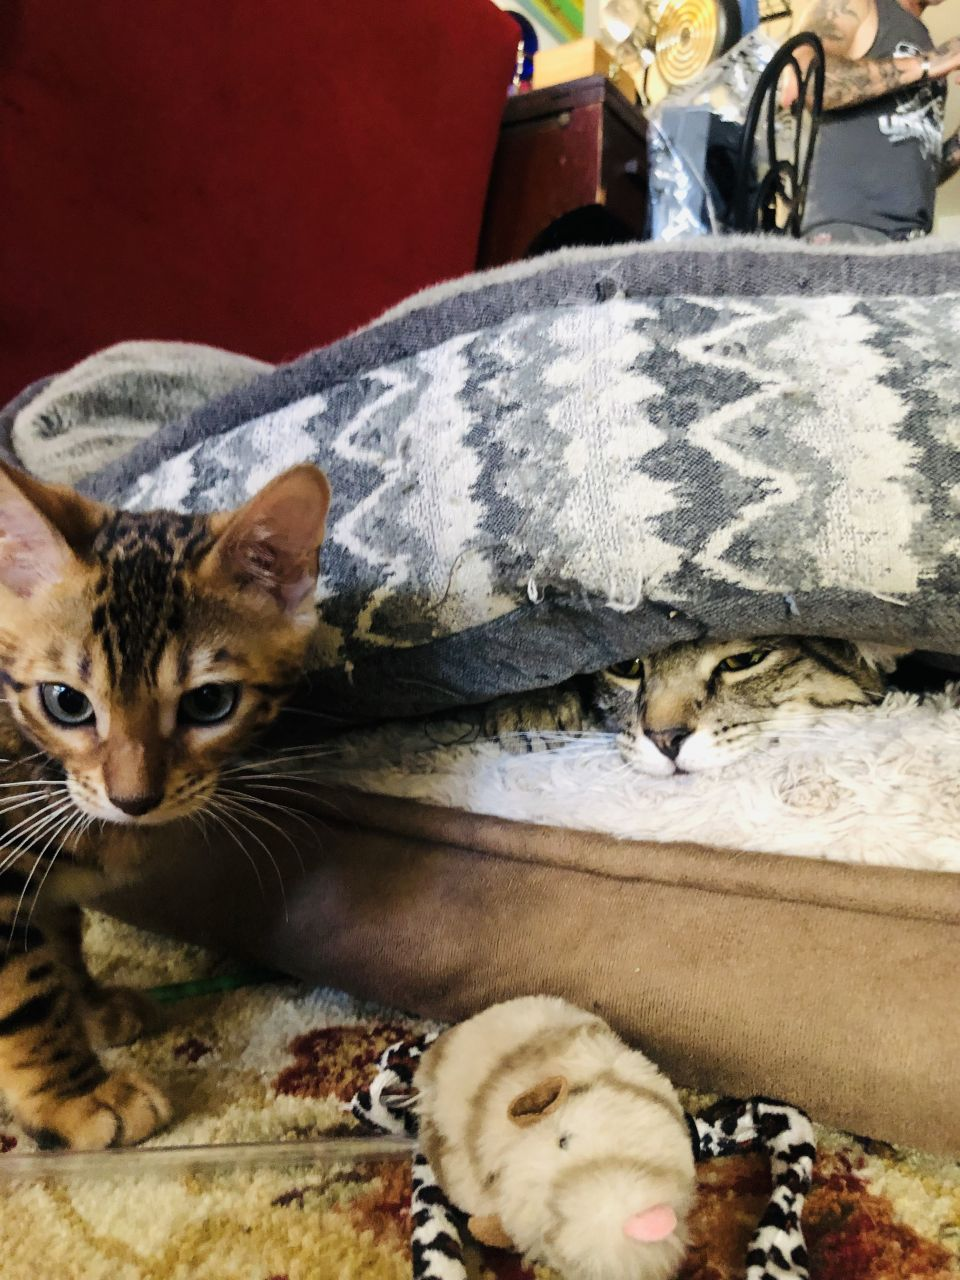 I think I finally figured out how to post to Lufa. These are my 2 cats. One is very young and crazy, she's a Bengal and her name is Josie.  The other cat is Brodie, and he's hiding from everyone and I relate because I do that a lot myself.